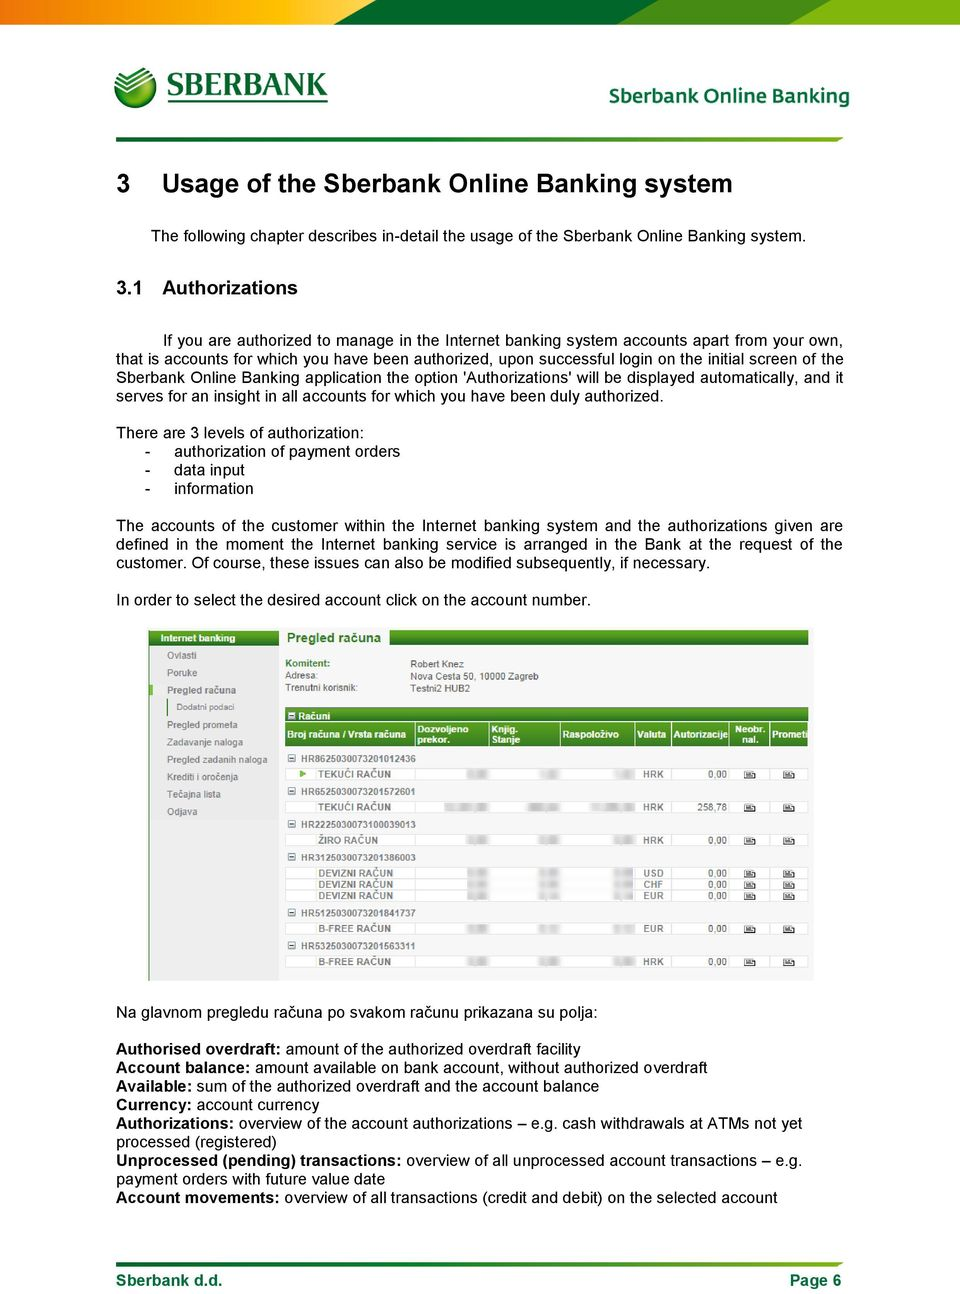 screen of the Sberbank Online Banking application the option 'Authorizations' will be displayed automatically, and it serves for an insight in all accounts for which you have been duly authorized.